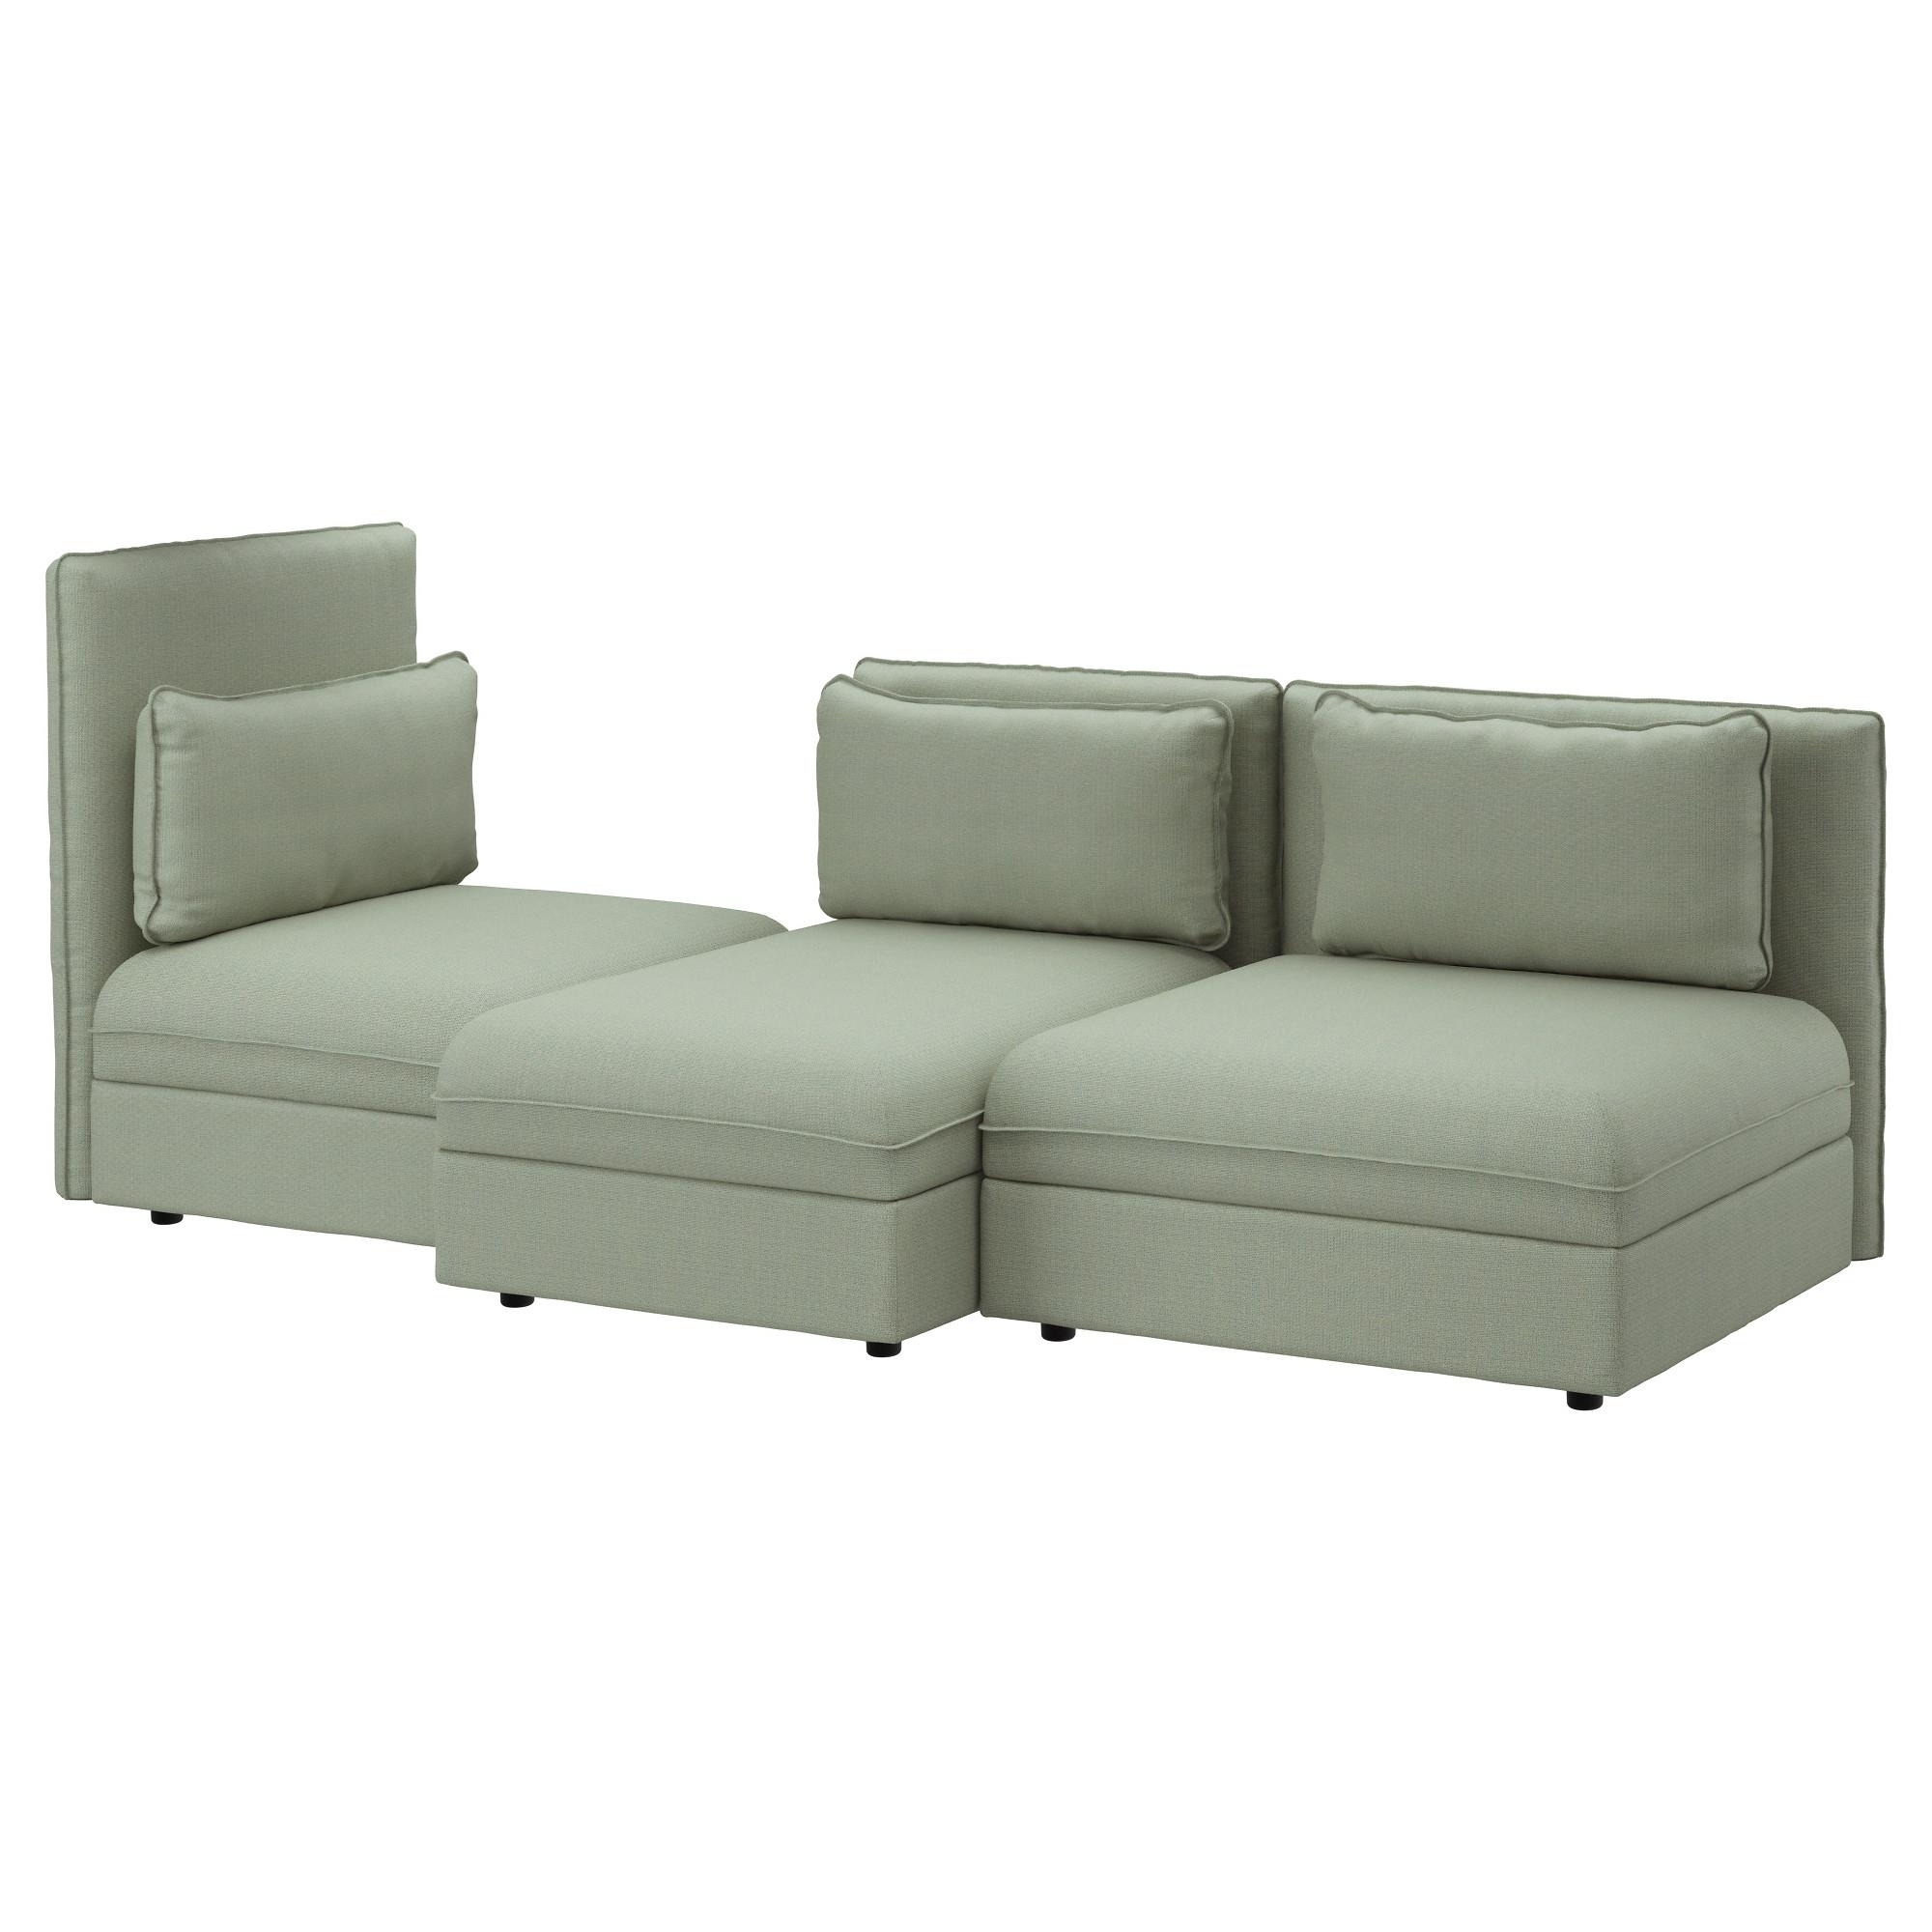 Ikea Sofa 3 20 Photos Ikea Chaise Lounge Sofa Sofa Ideas